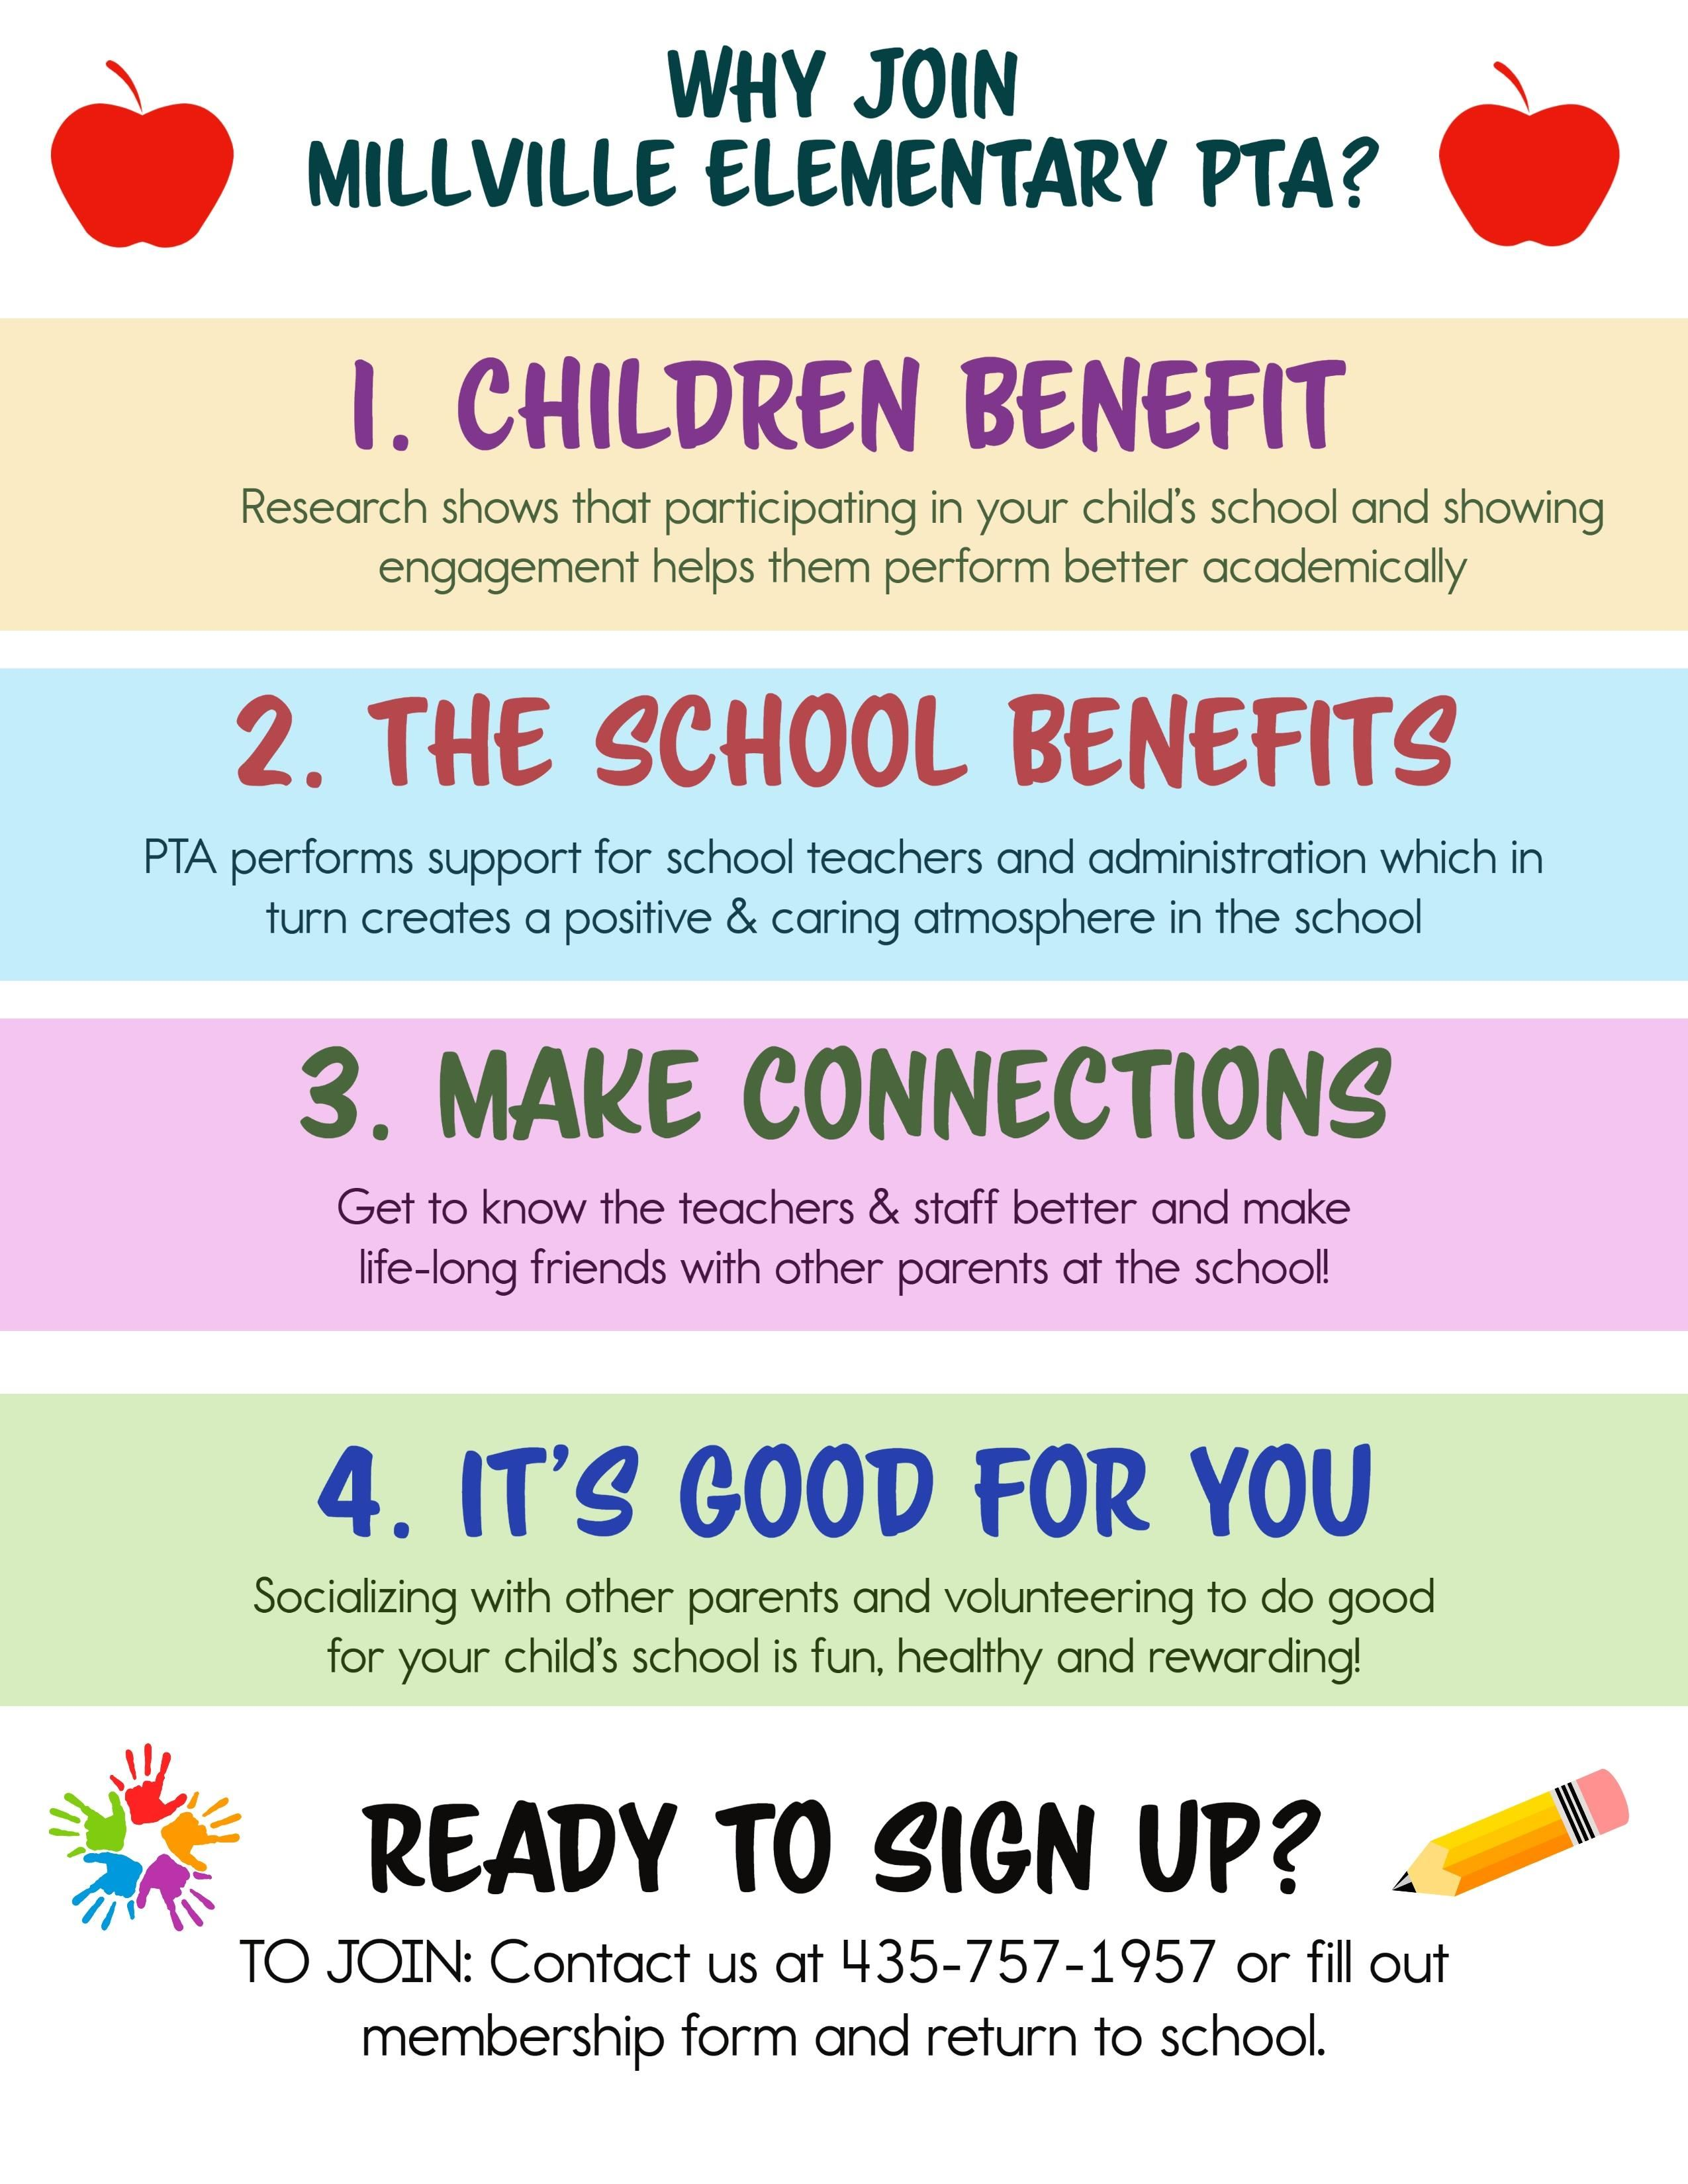 Why join the PTA